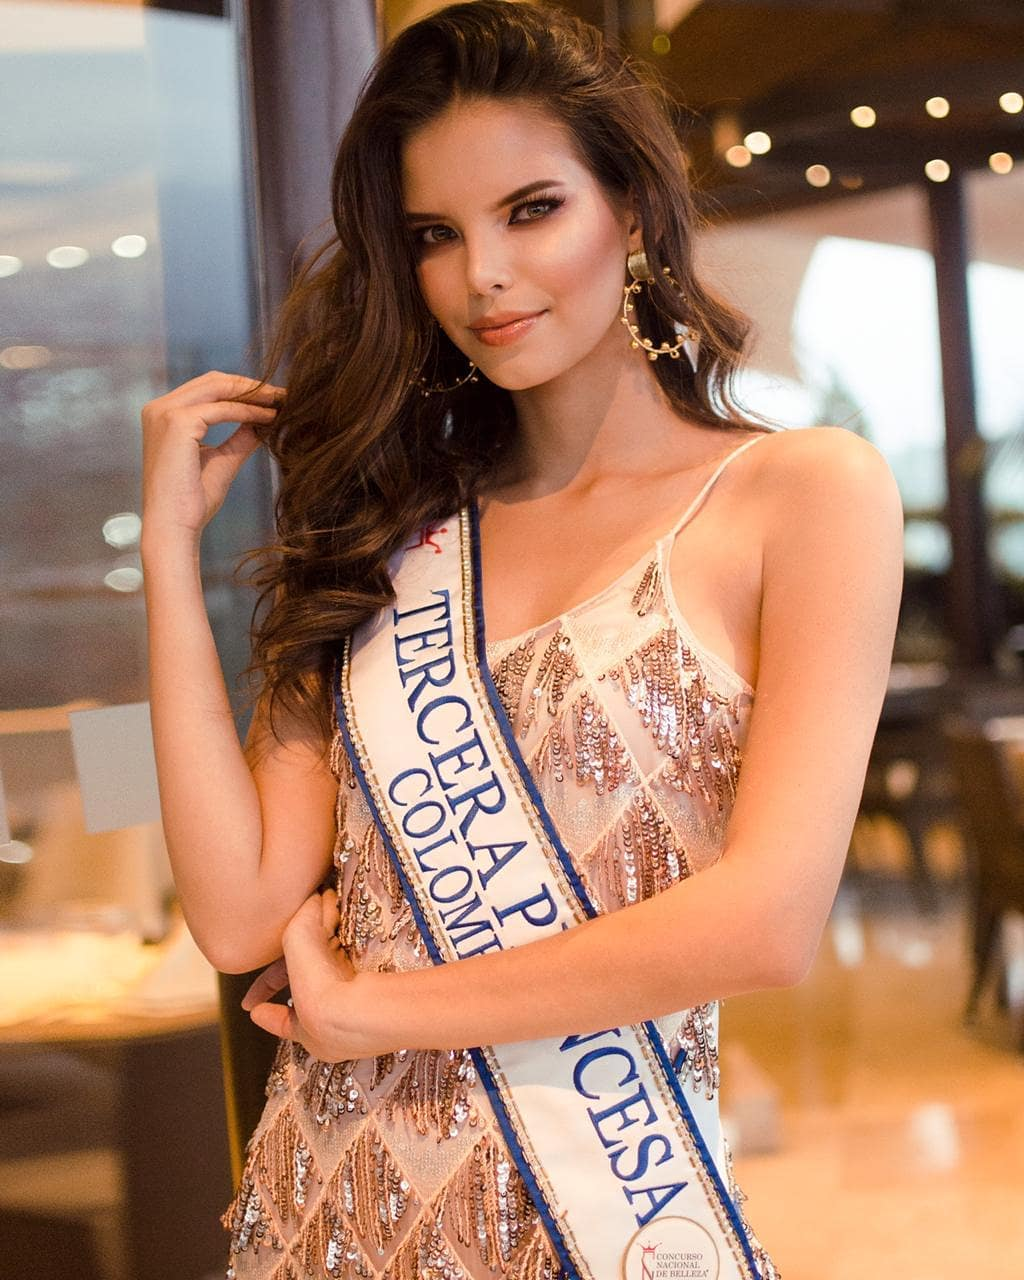 yaiselle tous, miss supranational colombia 2019. 51019910